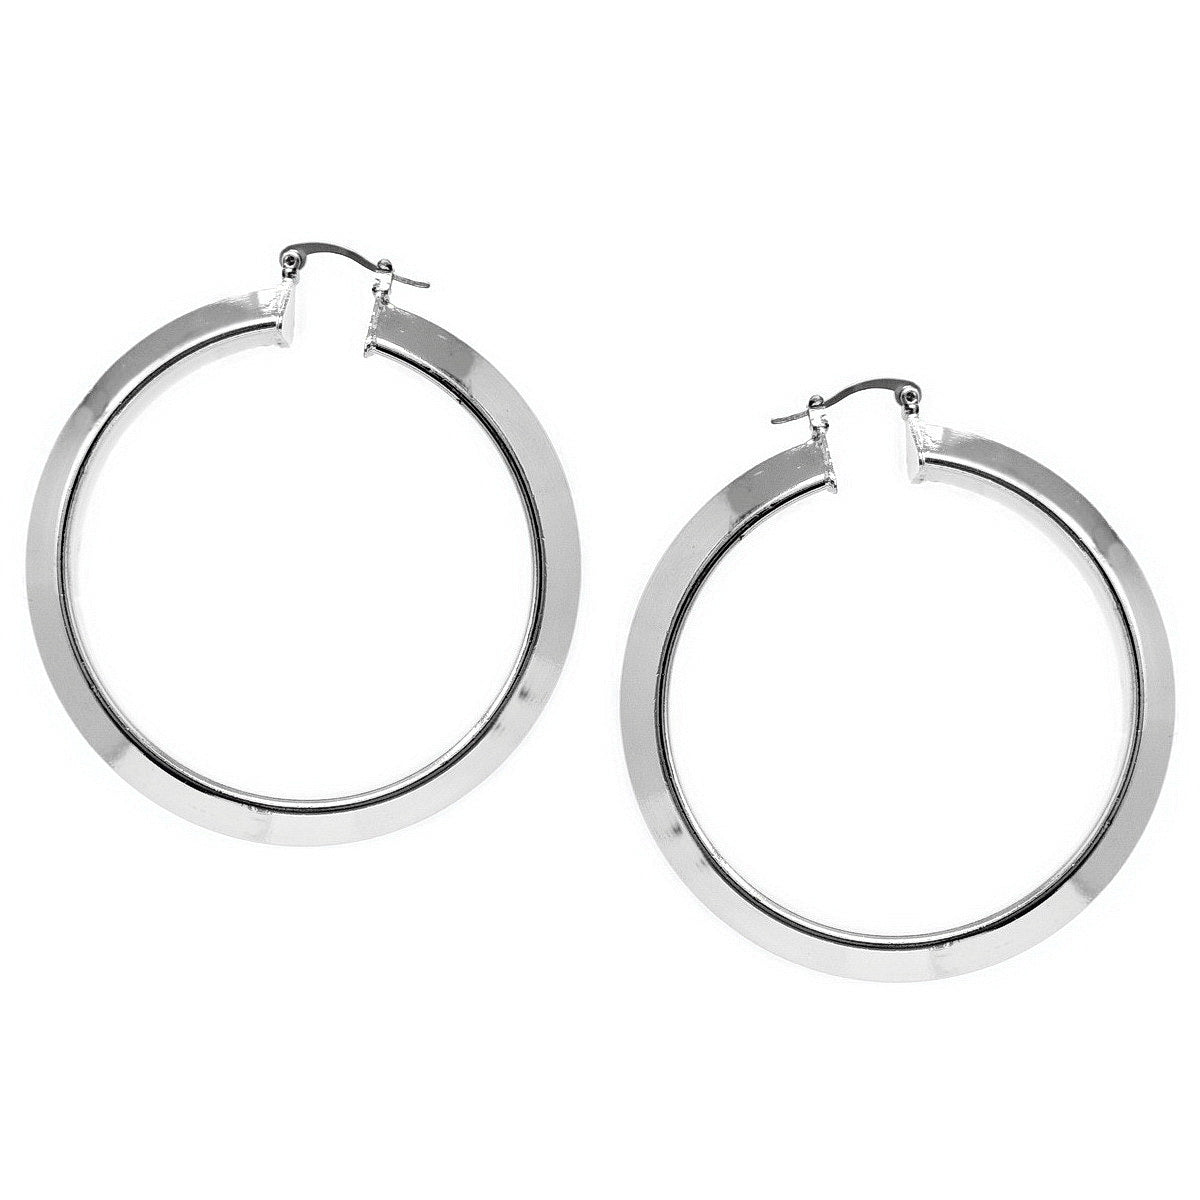 Thick Hoop Earrings (60 mm)